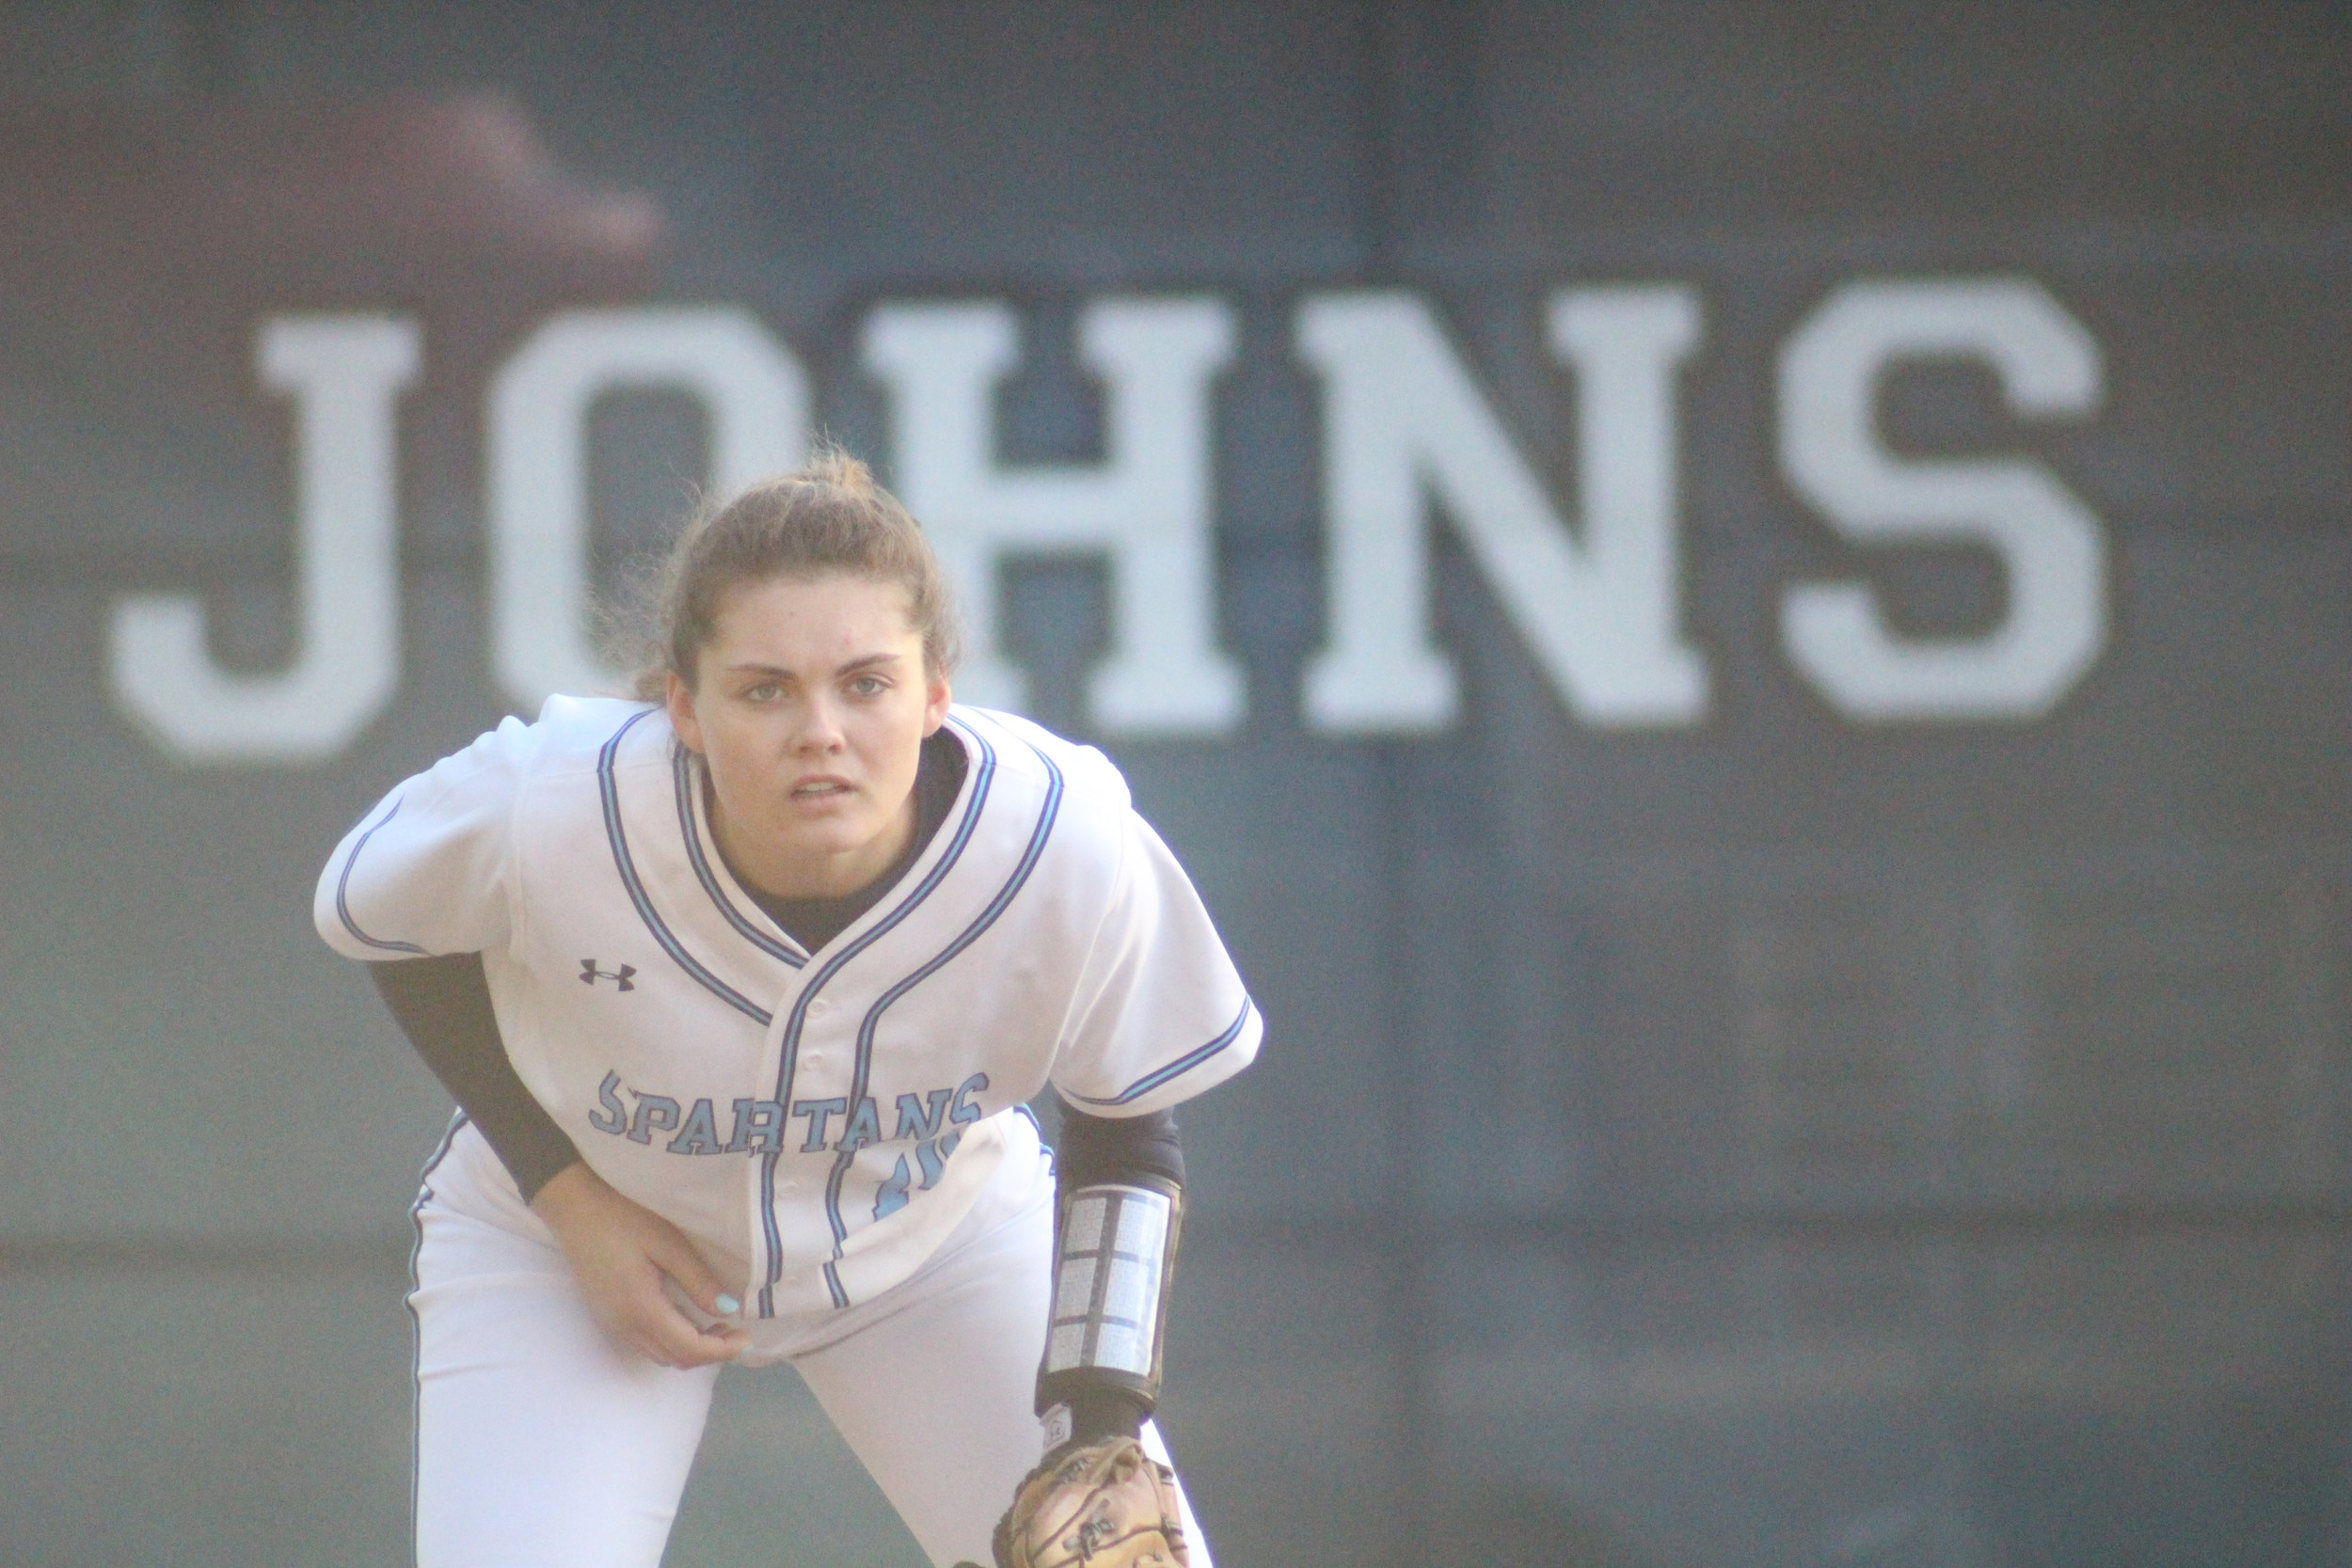 St. Johns Country Day School infielder Avery Wasdin eyeballs next pitch in Lady Spartans action on the St. Johns campus. Lady Spartans opened with four wins and hold a 6-2 record now.